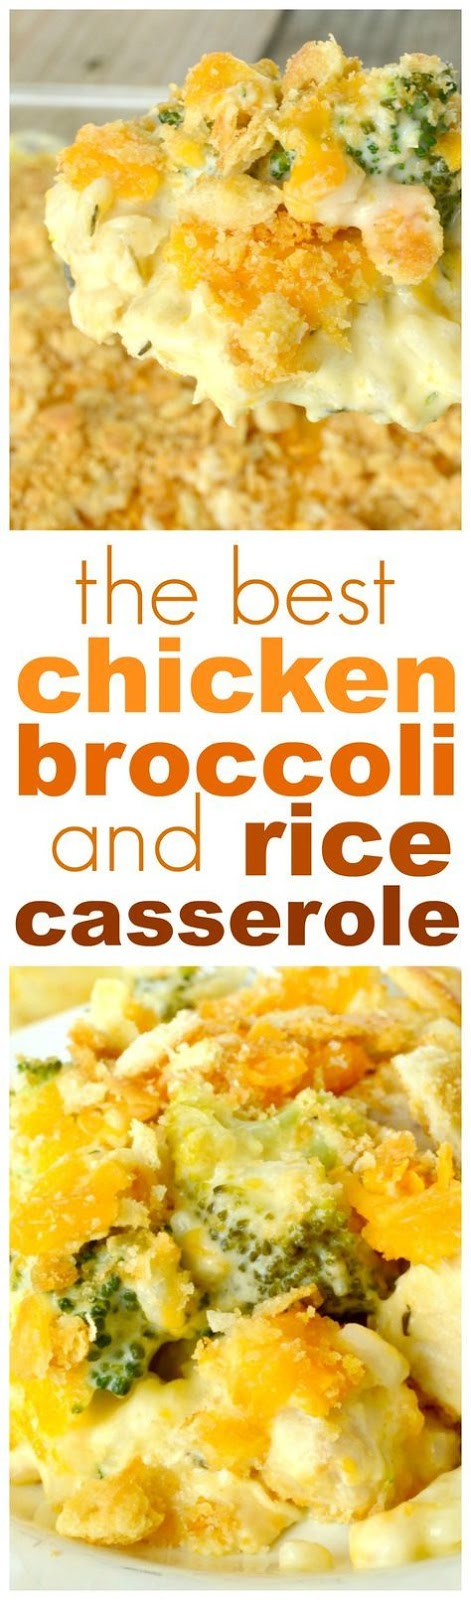 My family LOVE'S this Chicken Broccoli Rice Casserole! It's one of those dishes that is so perfect in its pure, wholesome, simplicity that they just can't get enough of it!